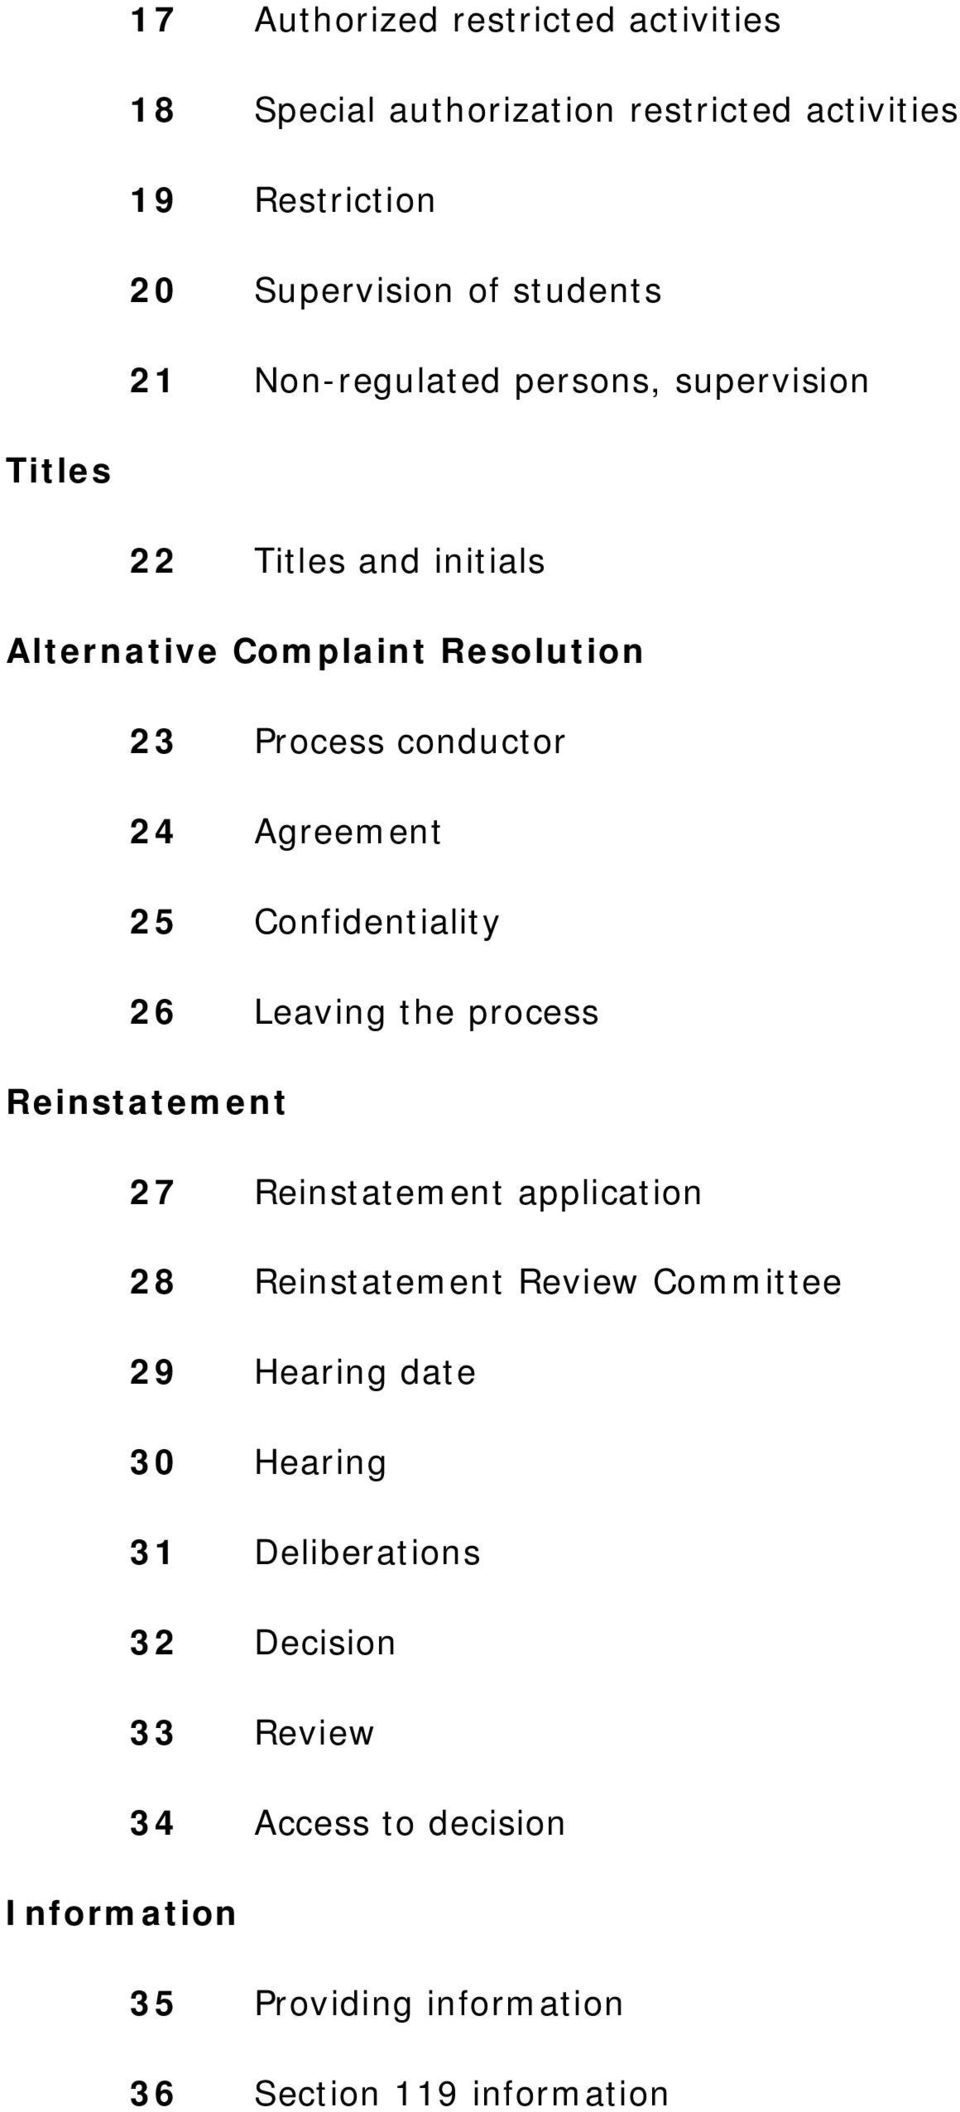 25 Confidentiality 26 Leaving the process Reinstatement 27 Reinstatement application 28 Reinstatement Review Committee 29 Hearing